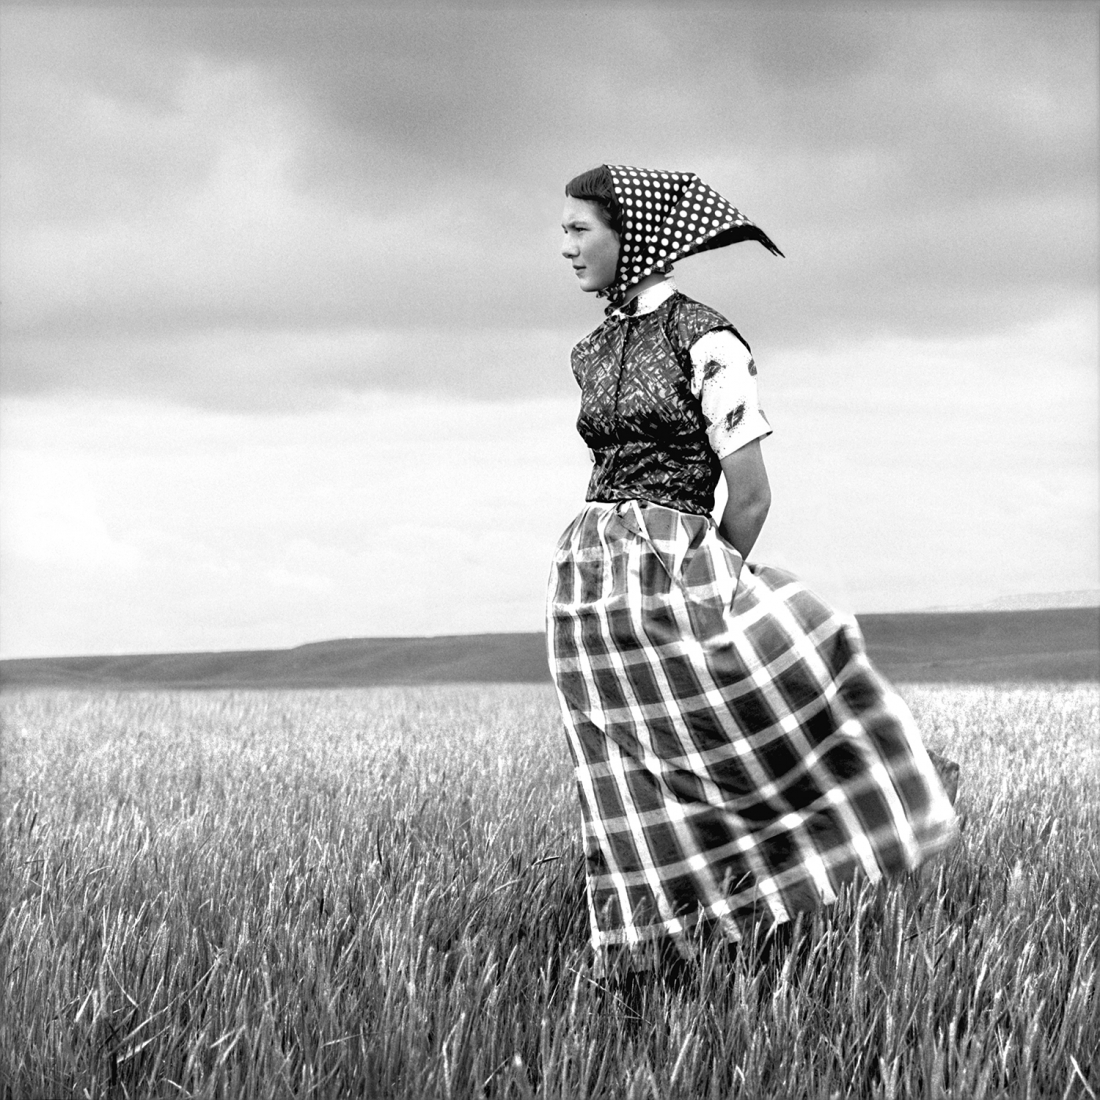 Laura Wilson, Emma, Hutterite Girl in Field, Duncan Ranch Colony, Harlowton, Montana, June 17, 1994